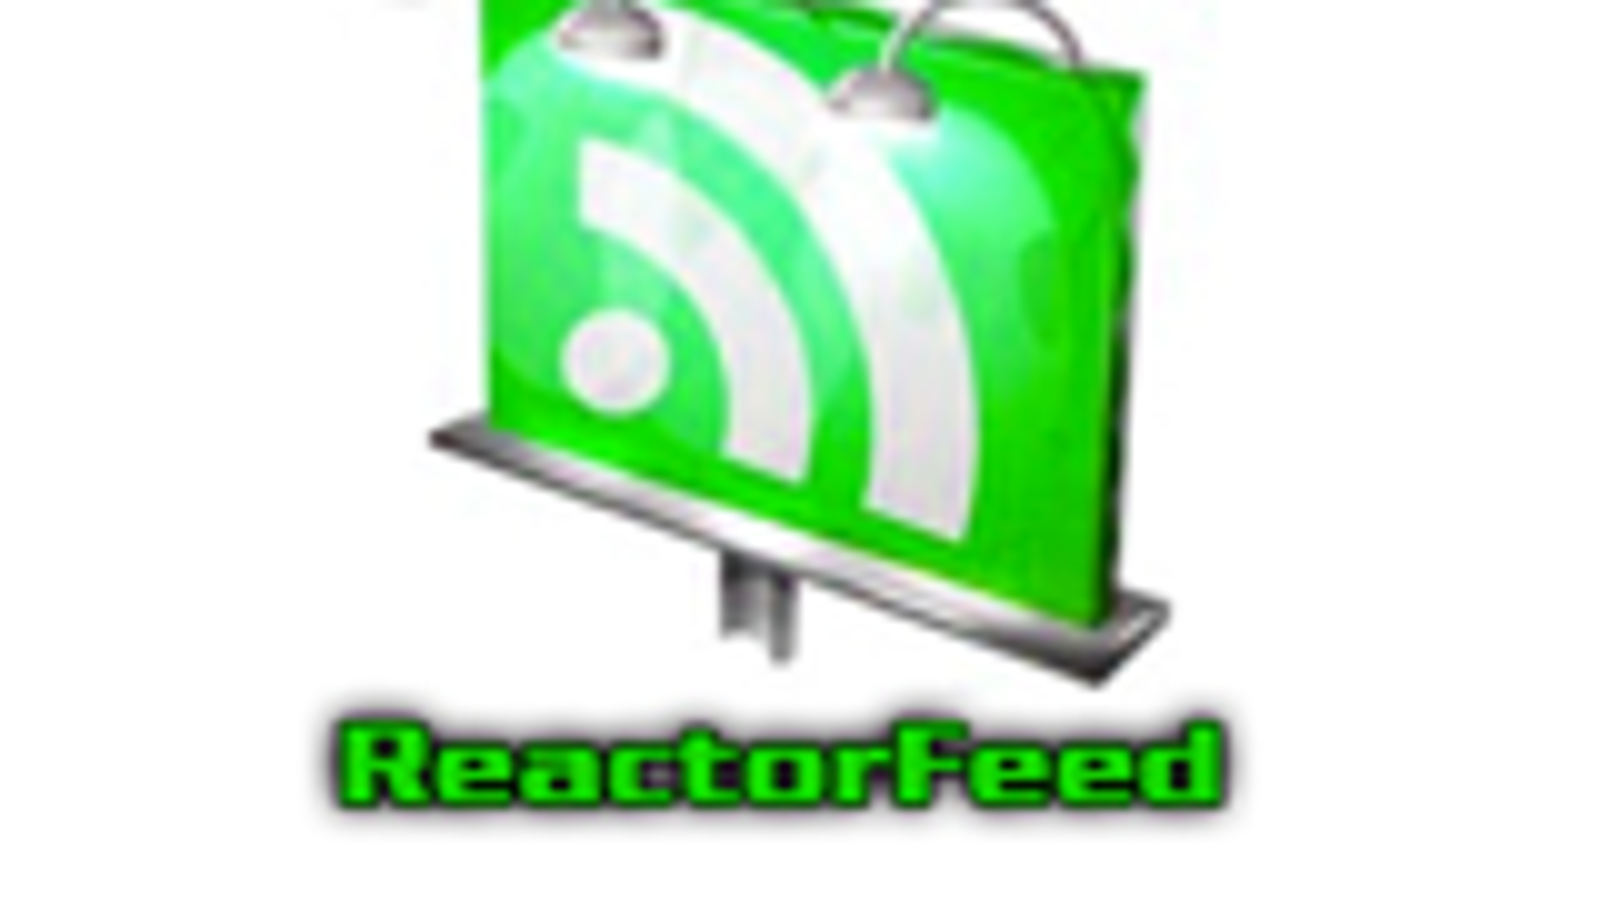 ReactorFeed Creates Custom RSS Feeds for Downloading